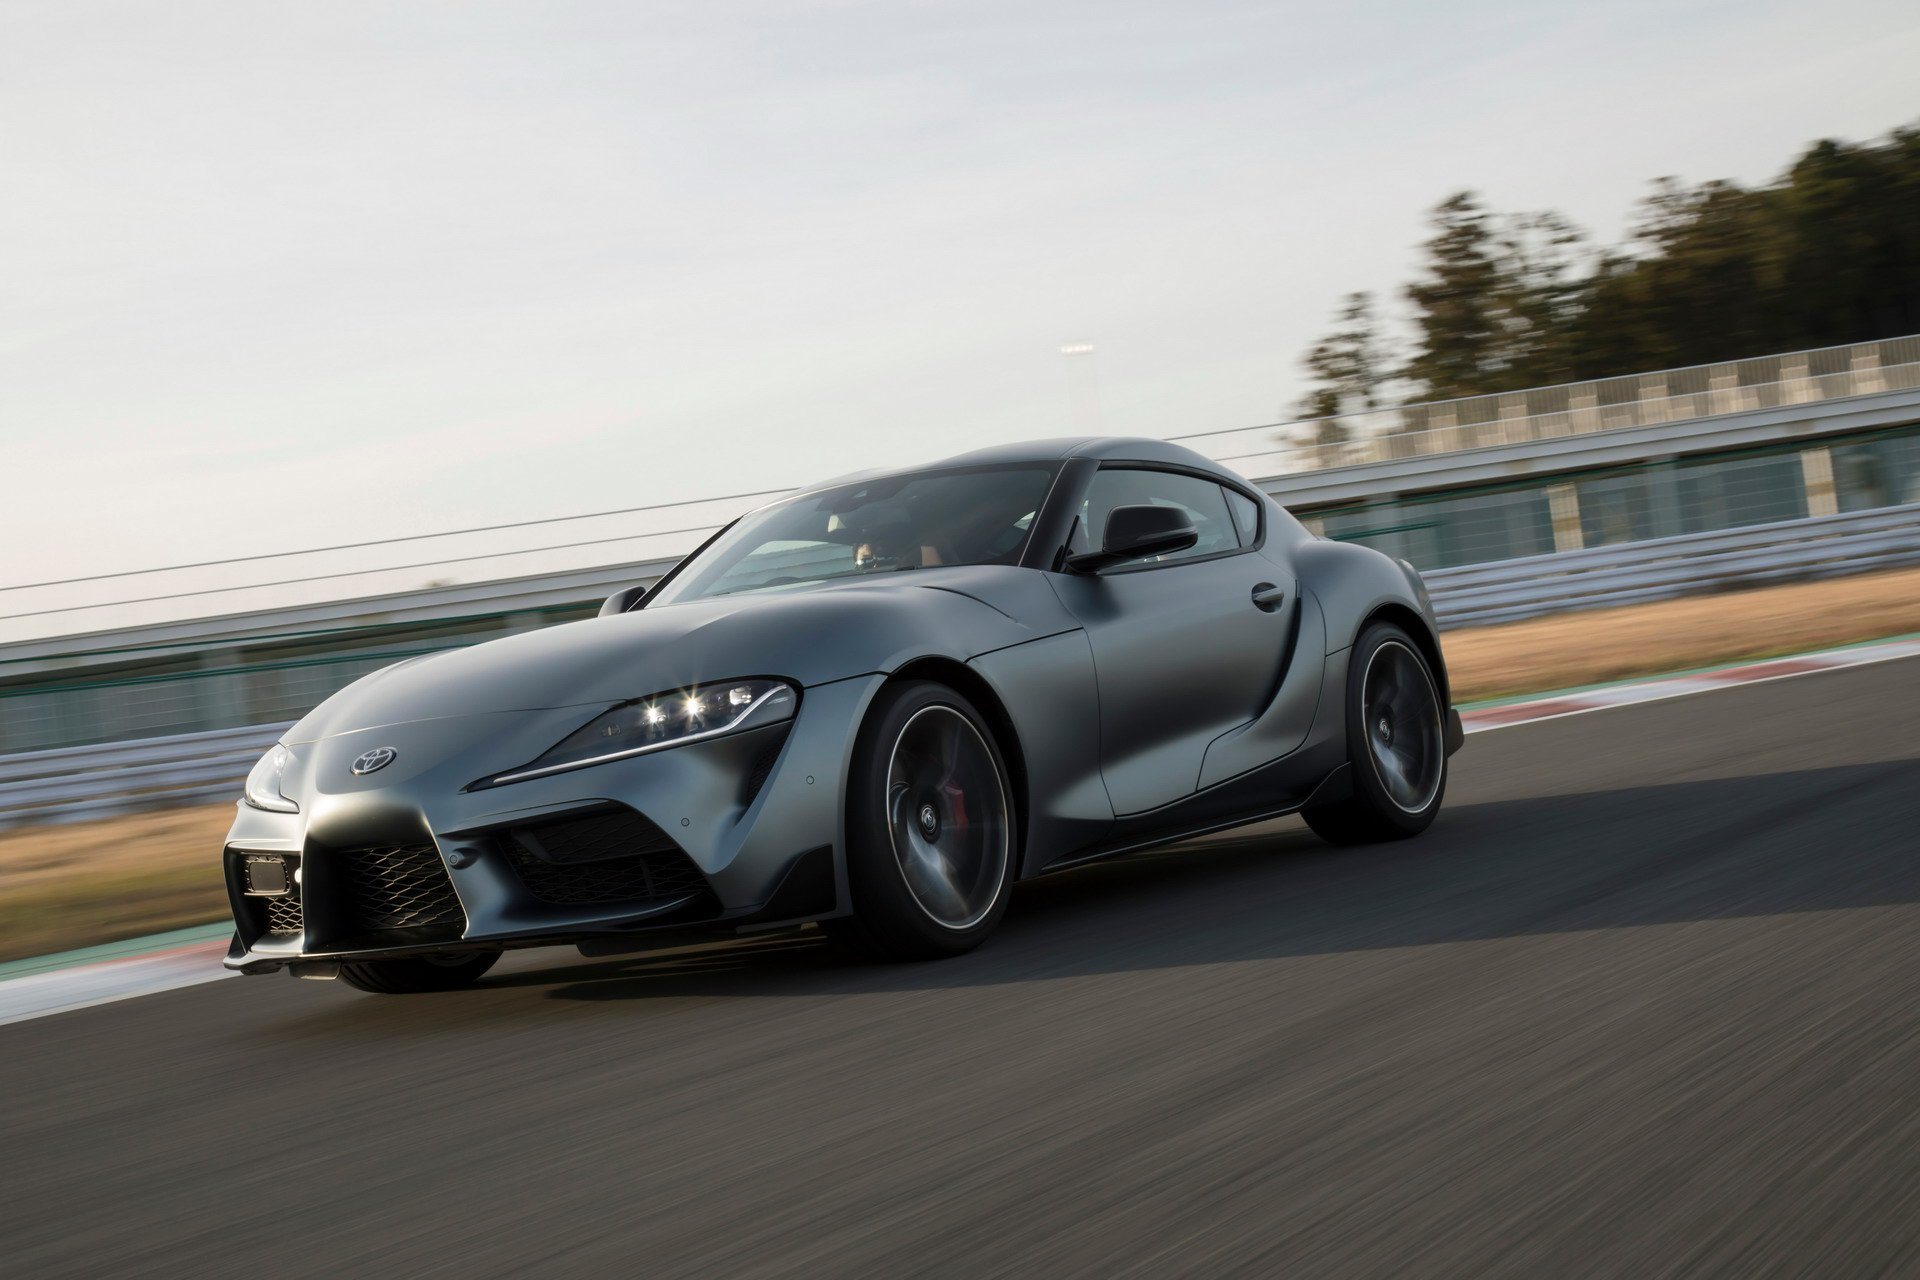 2020 Toyota Supra Gets Widebody Kit And Huge Wing In Tuner